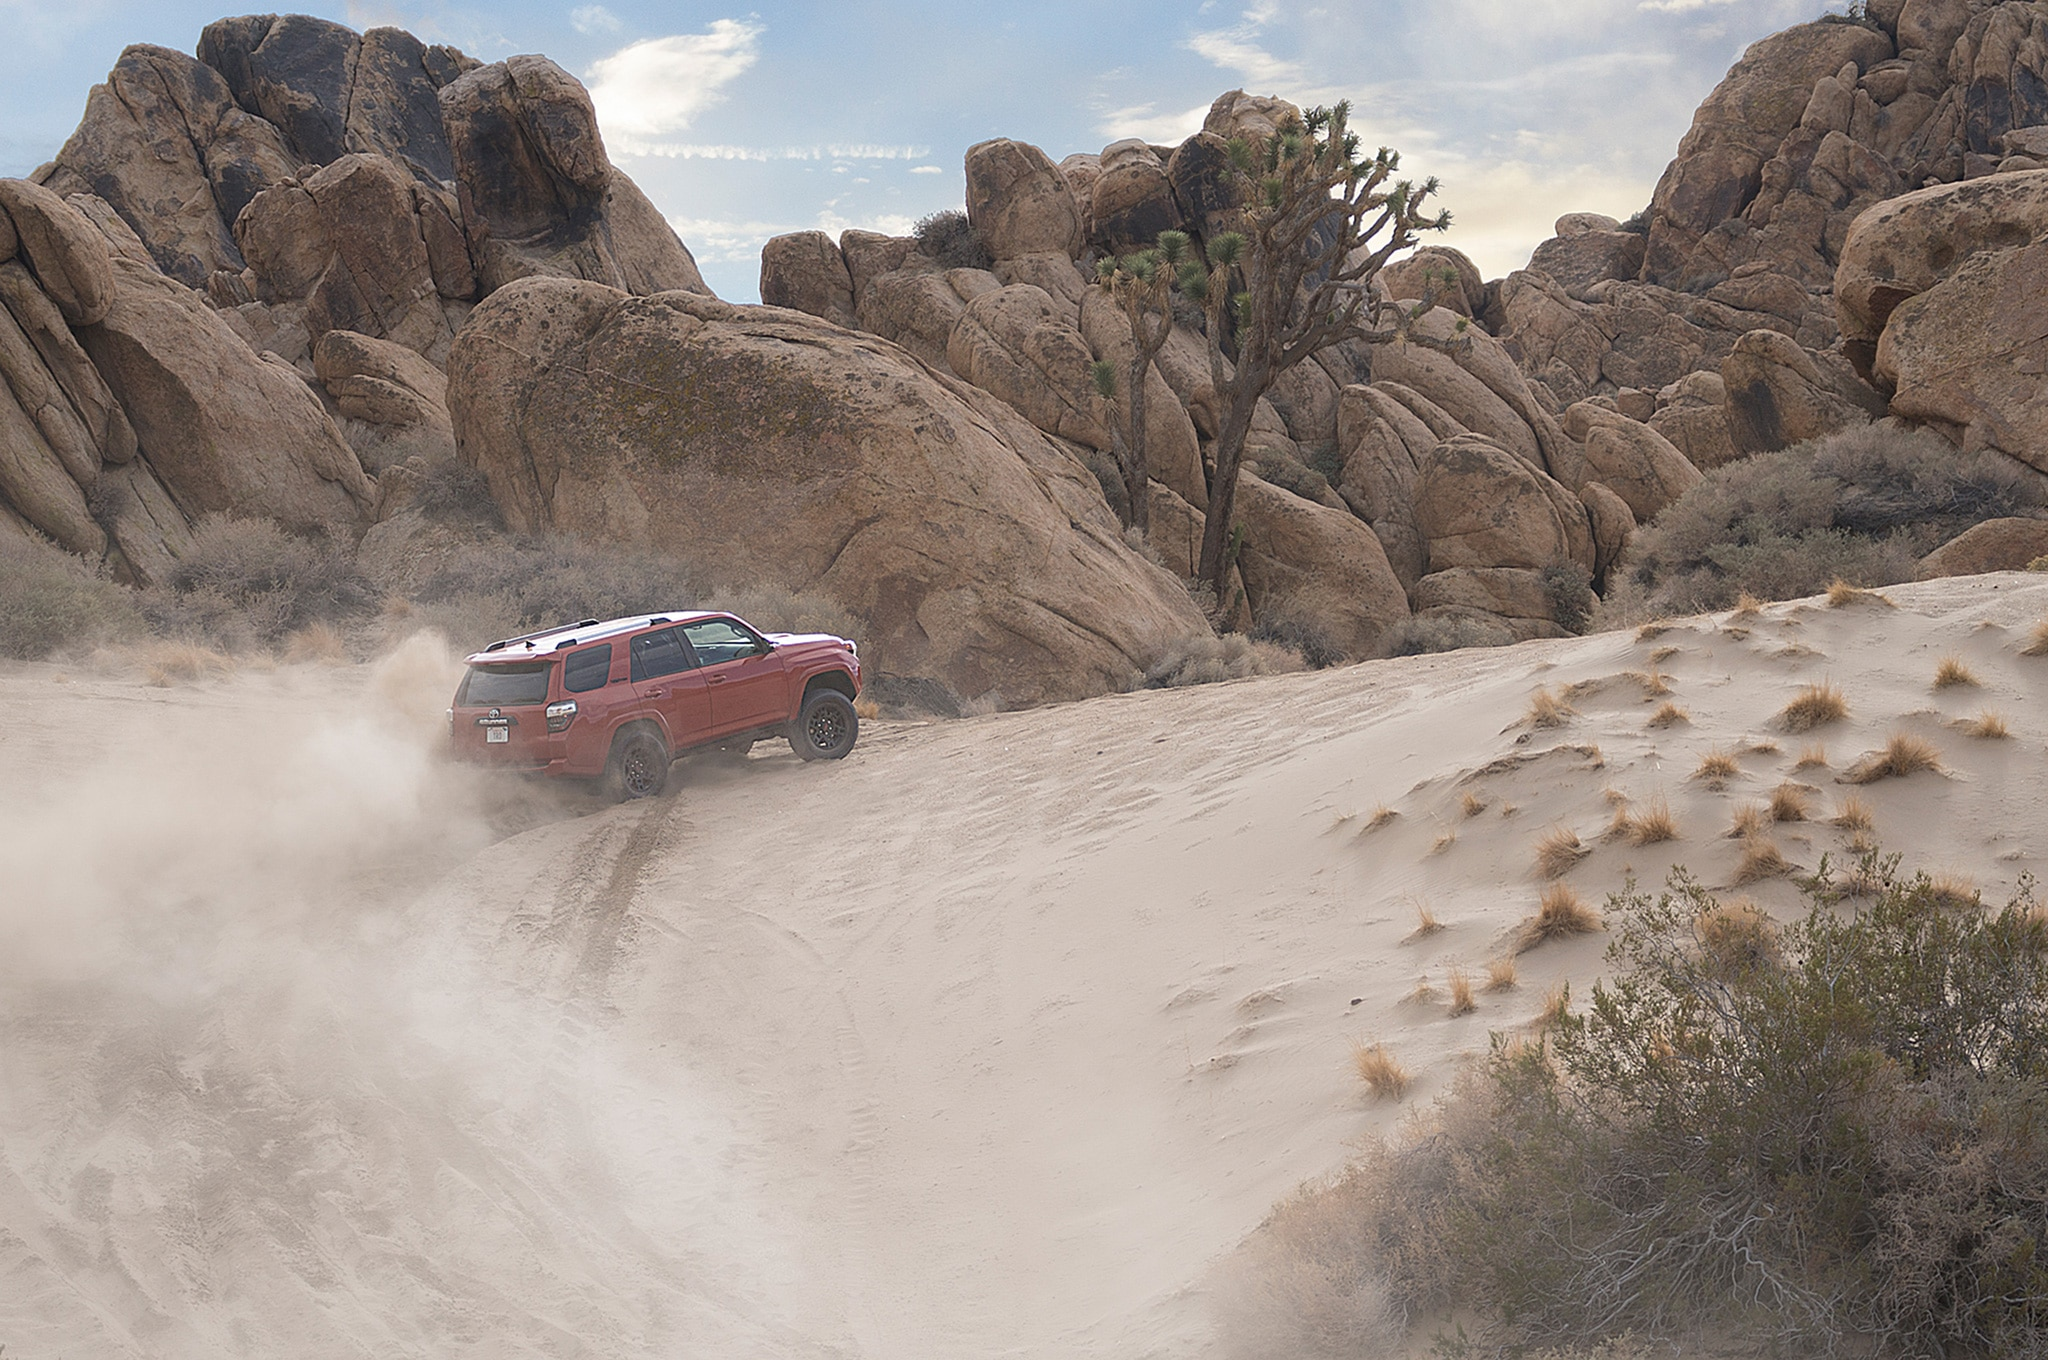 2015 Toyota 4Runner TRD Pro up hill